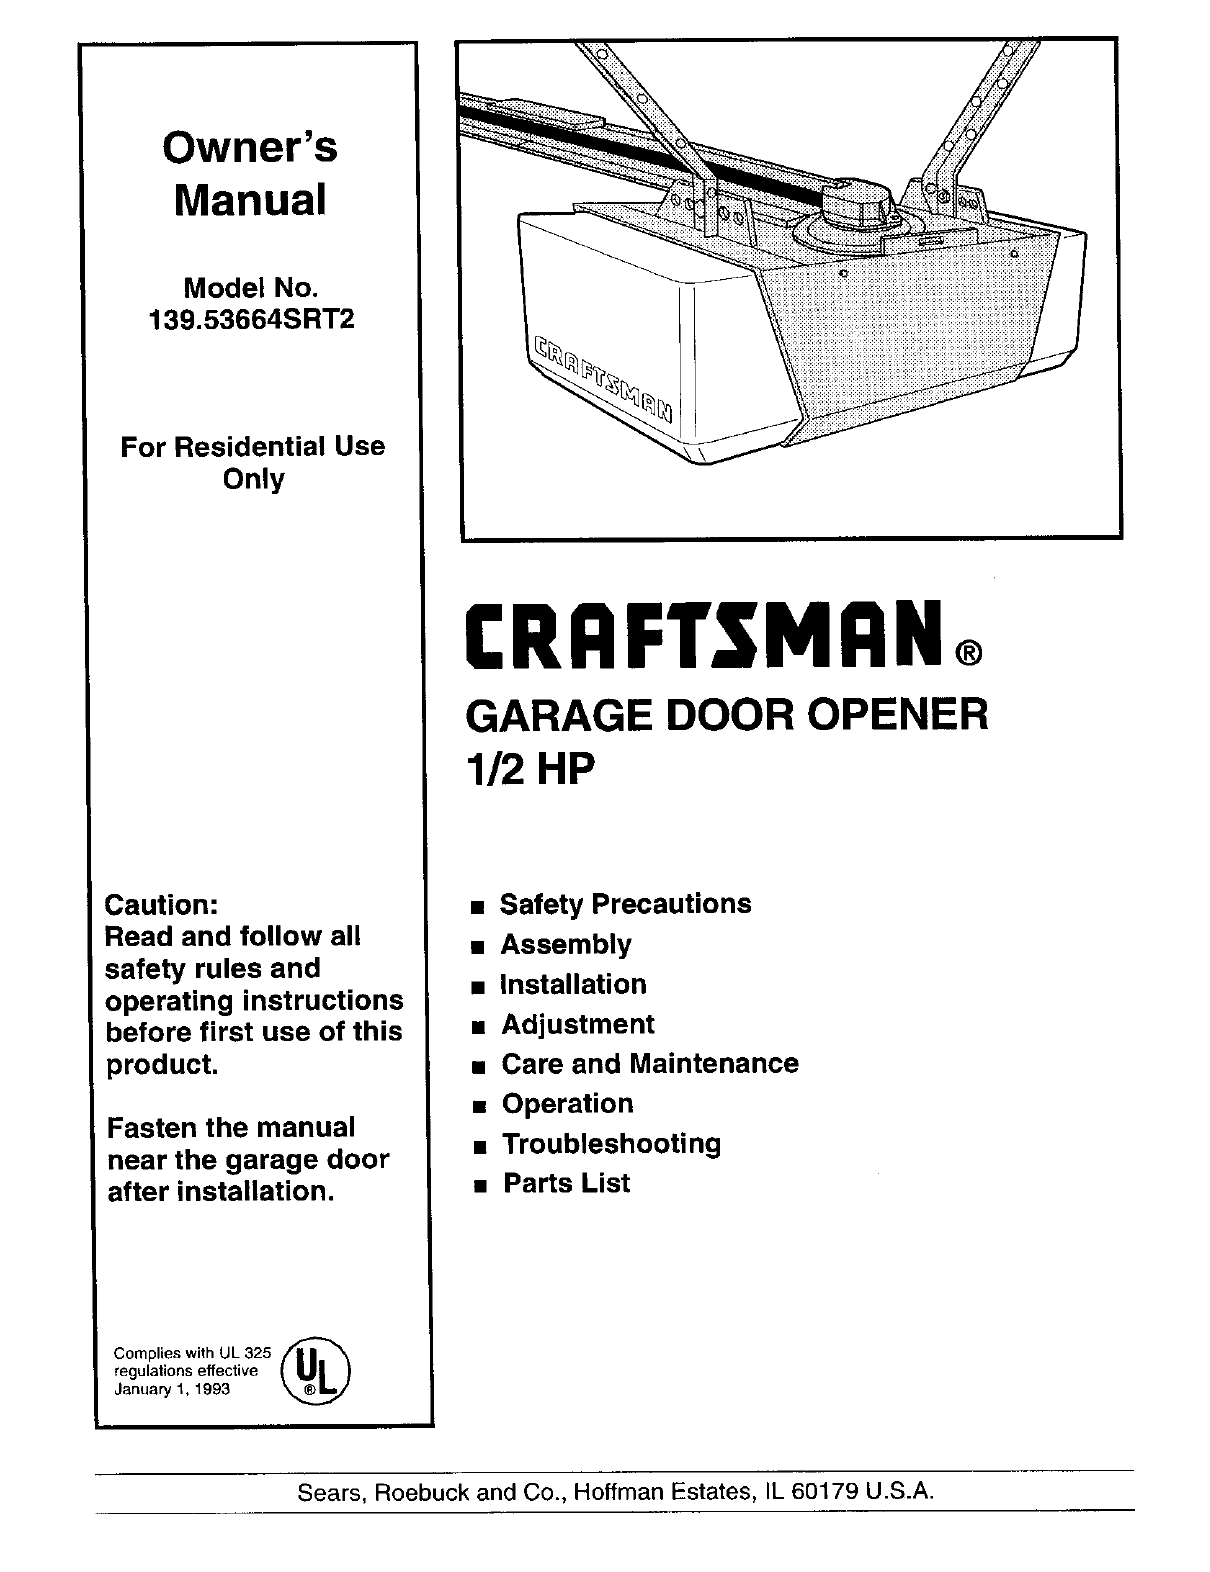 Craftsman Garage Door Opener 139.53664SRT2 User Guide